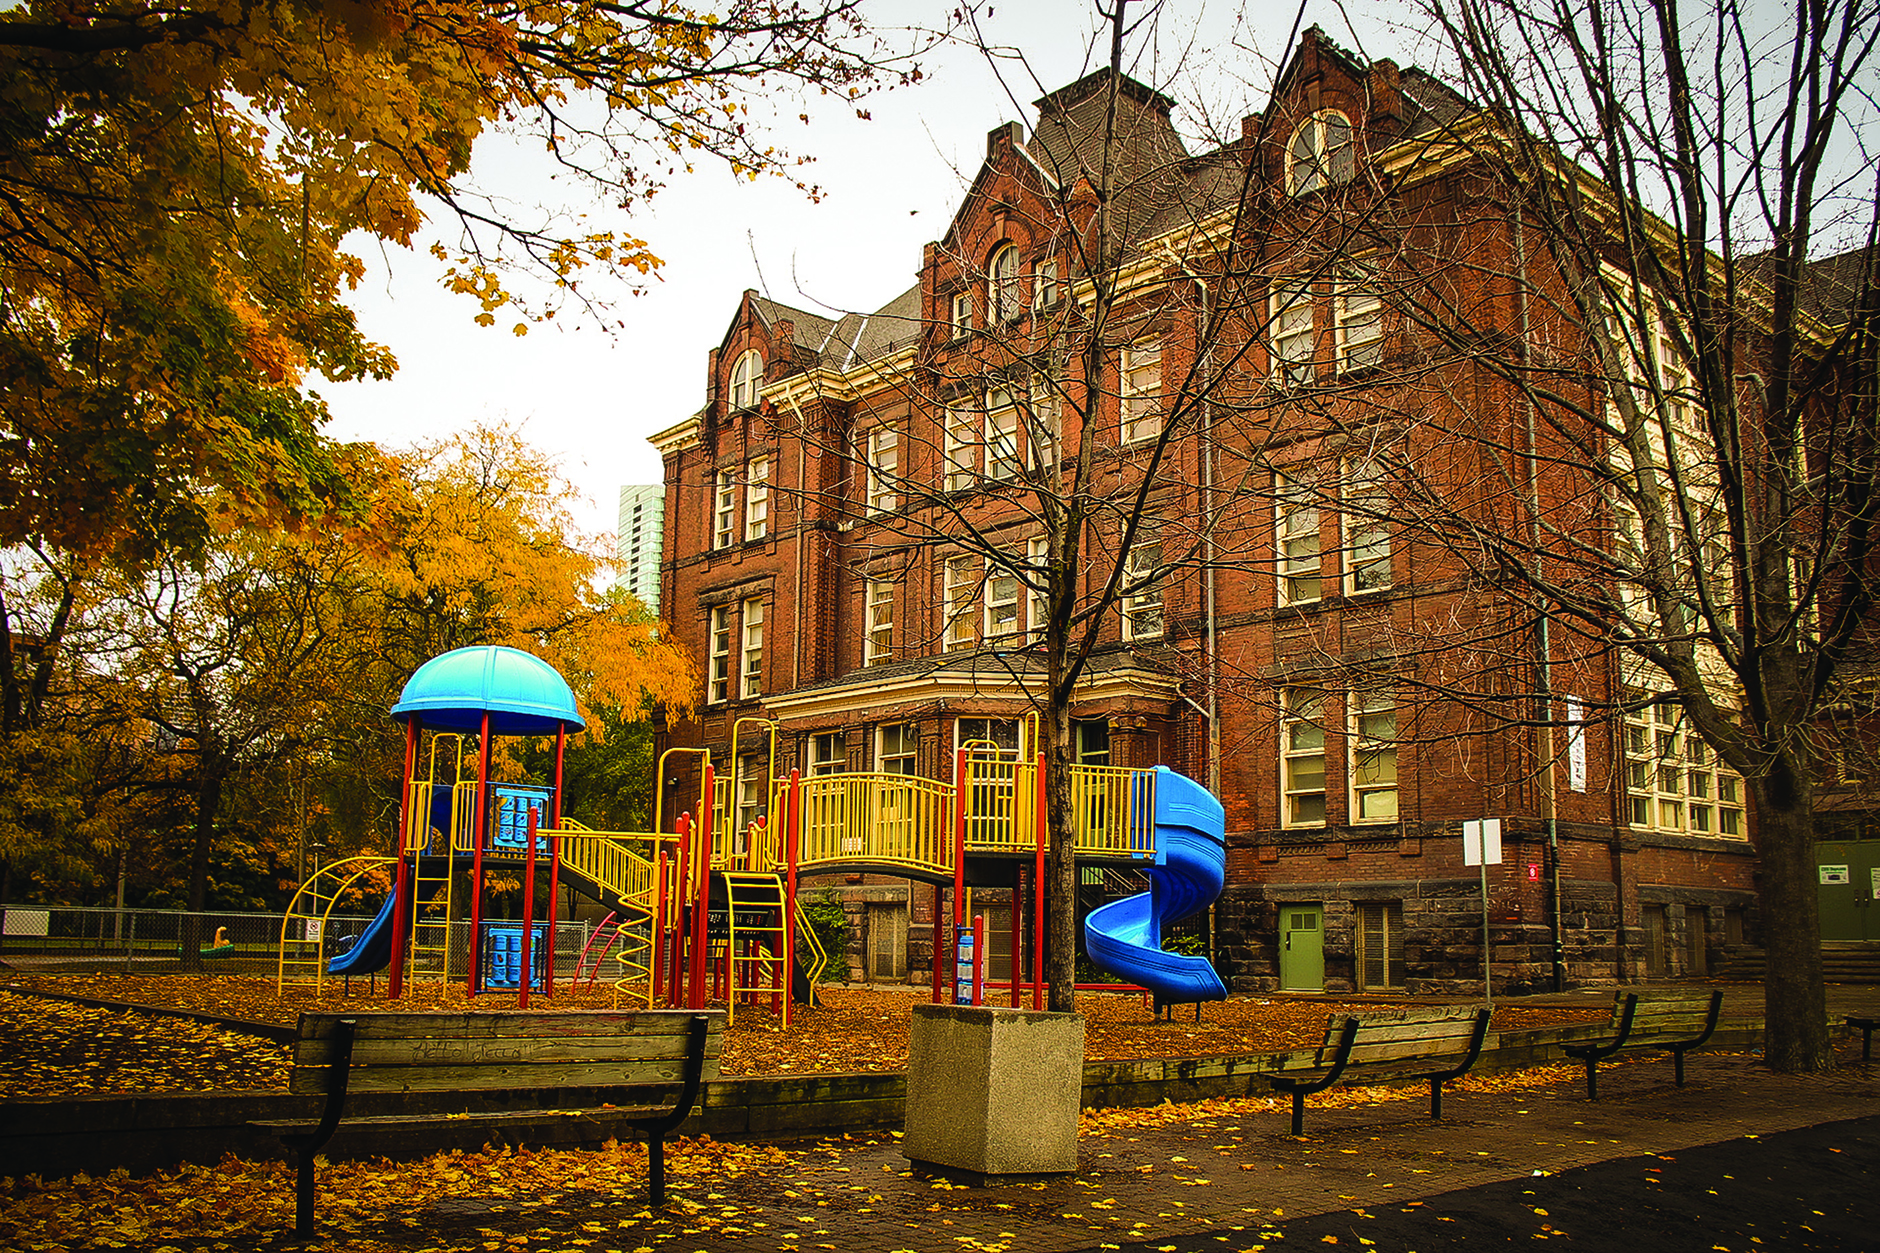 Winchester Public School, seen in the distance, educates both St. James Town and Cabbagetown residents. VIVEK SRIKANTHAN/THE VARSITY